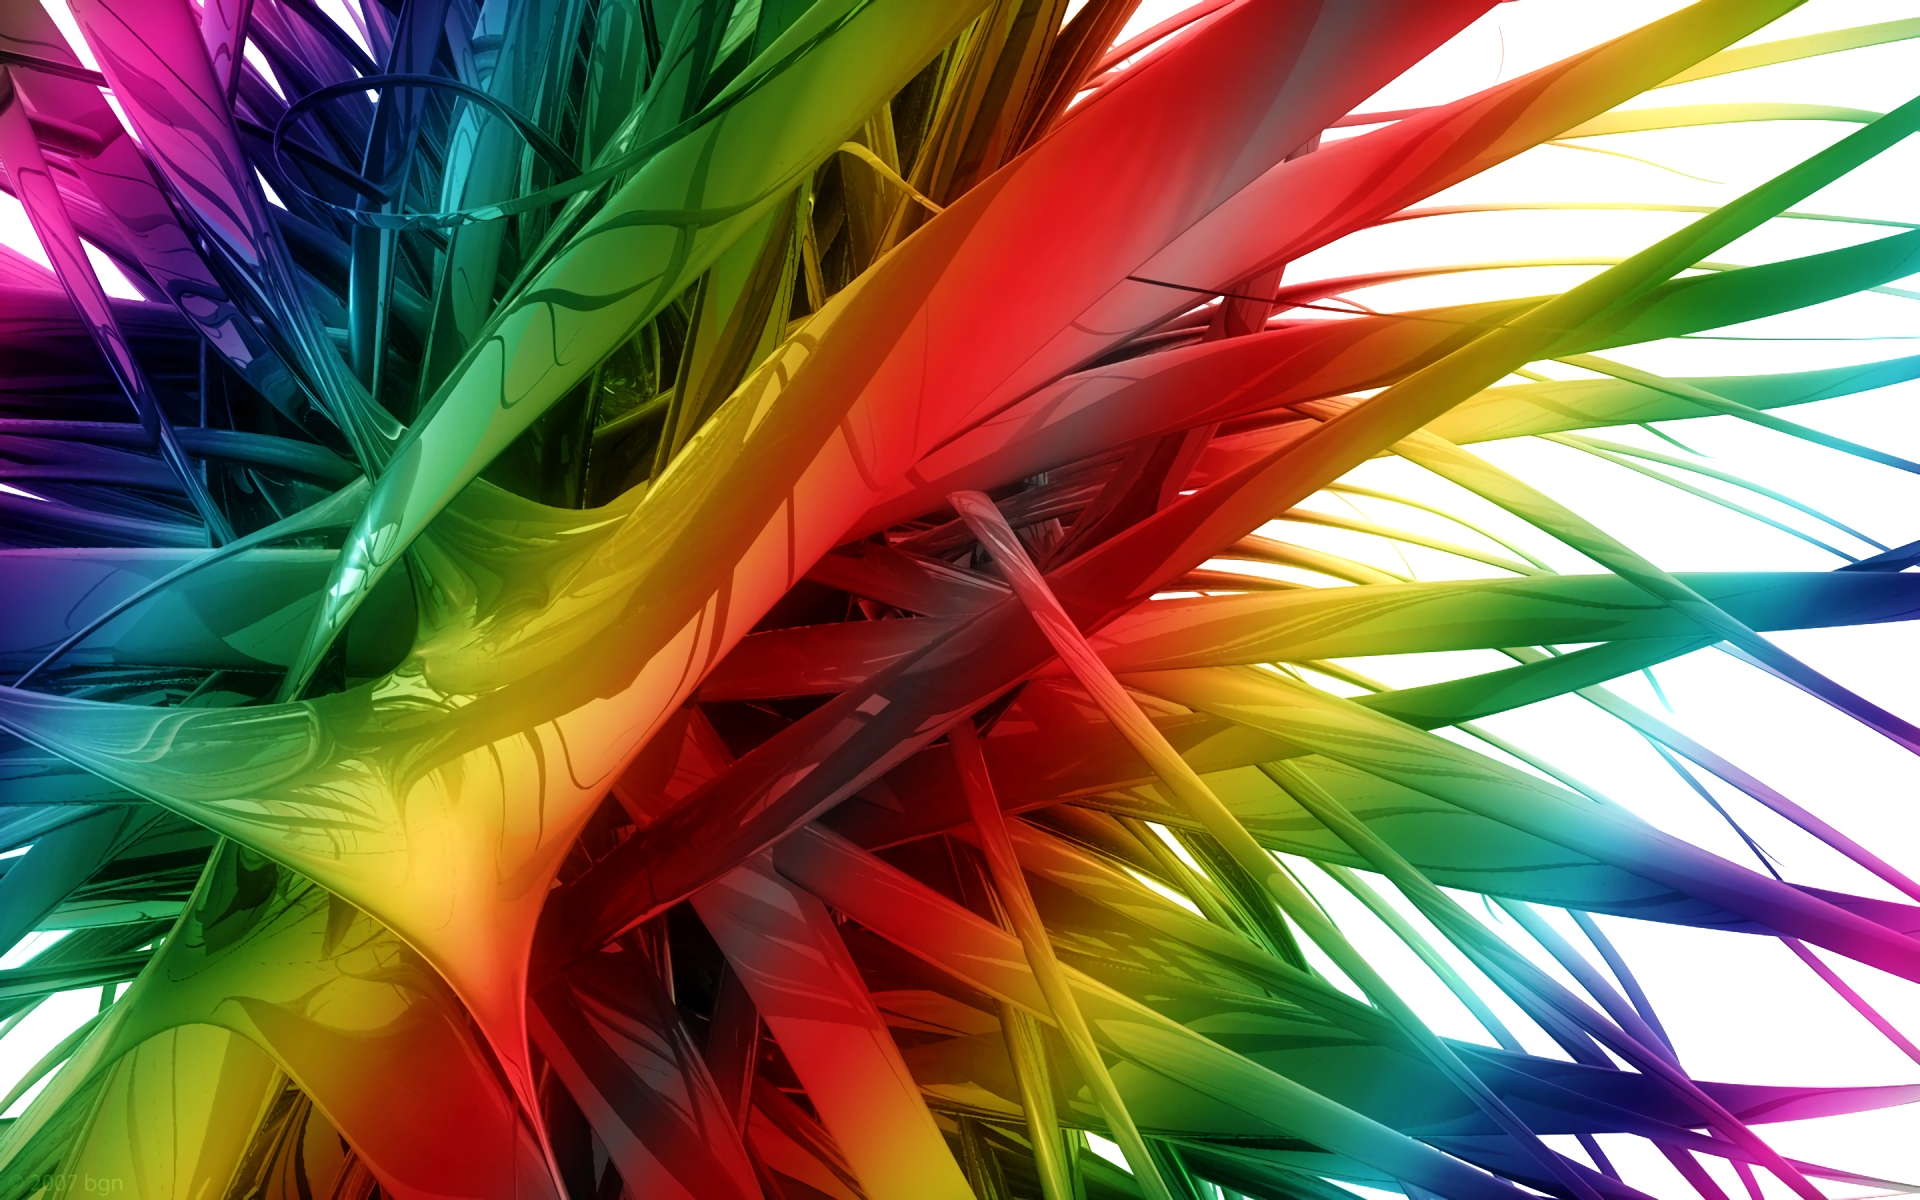 Abstract - Cool  CGI Abstract Colors Rainbow 3D Digital Digital Art Colorful Wallpaper